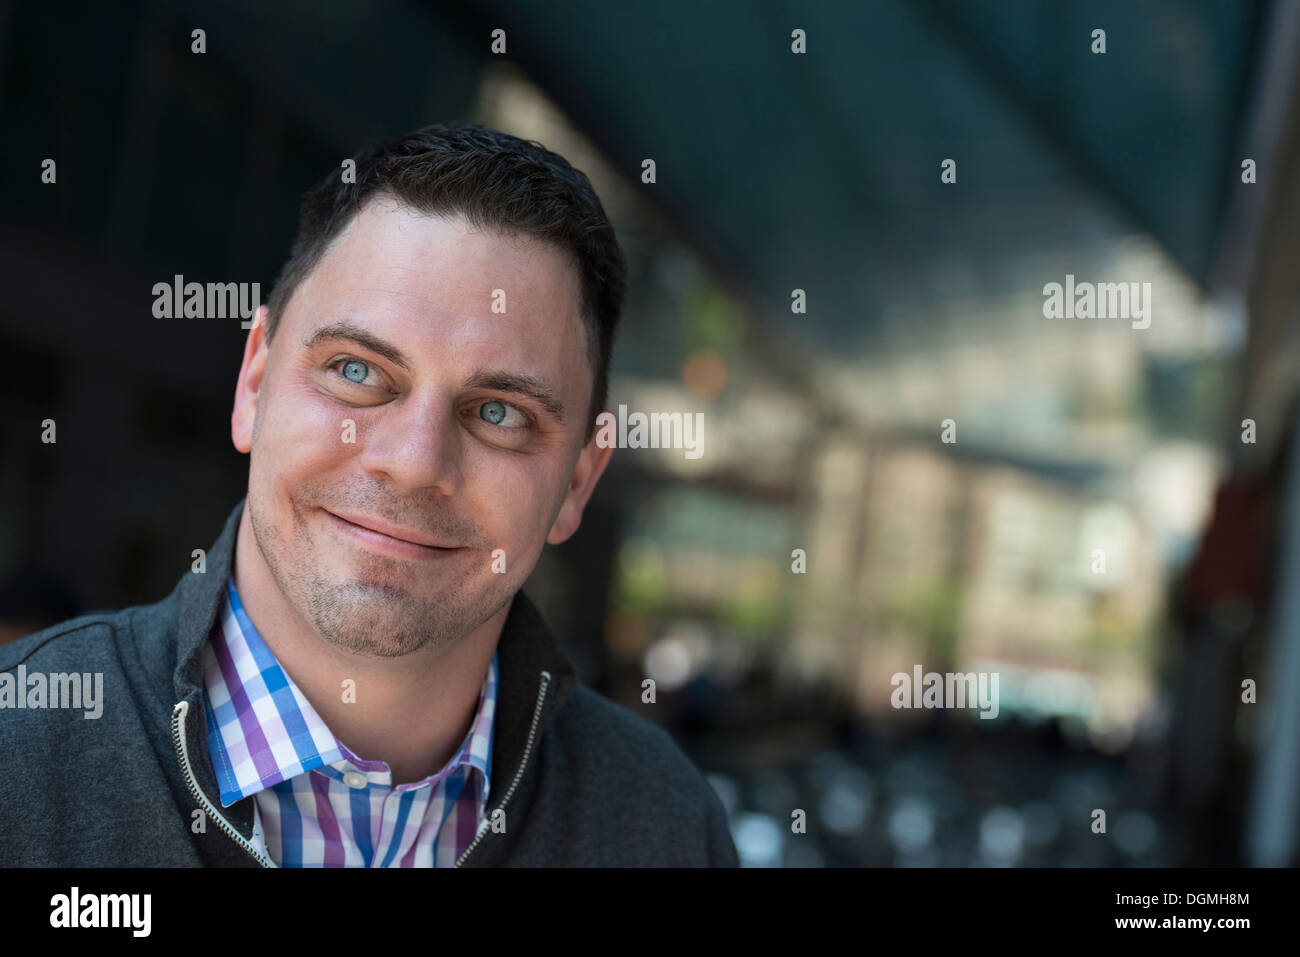 Business people on the move. A man in a open necked shirt and jacket. Stock Photo